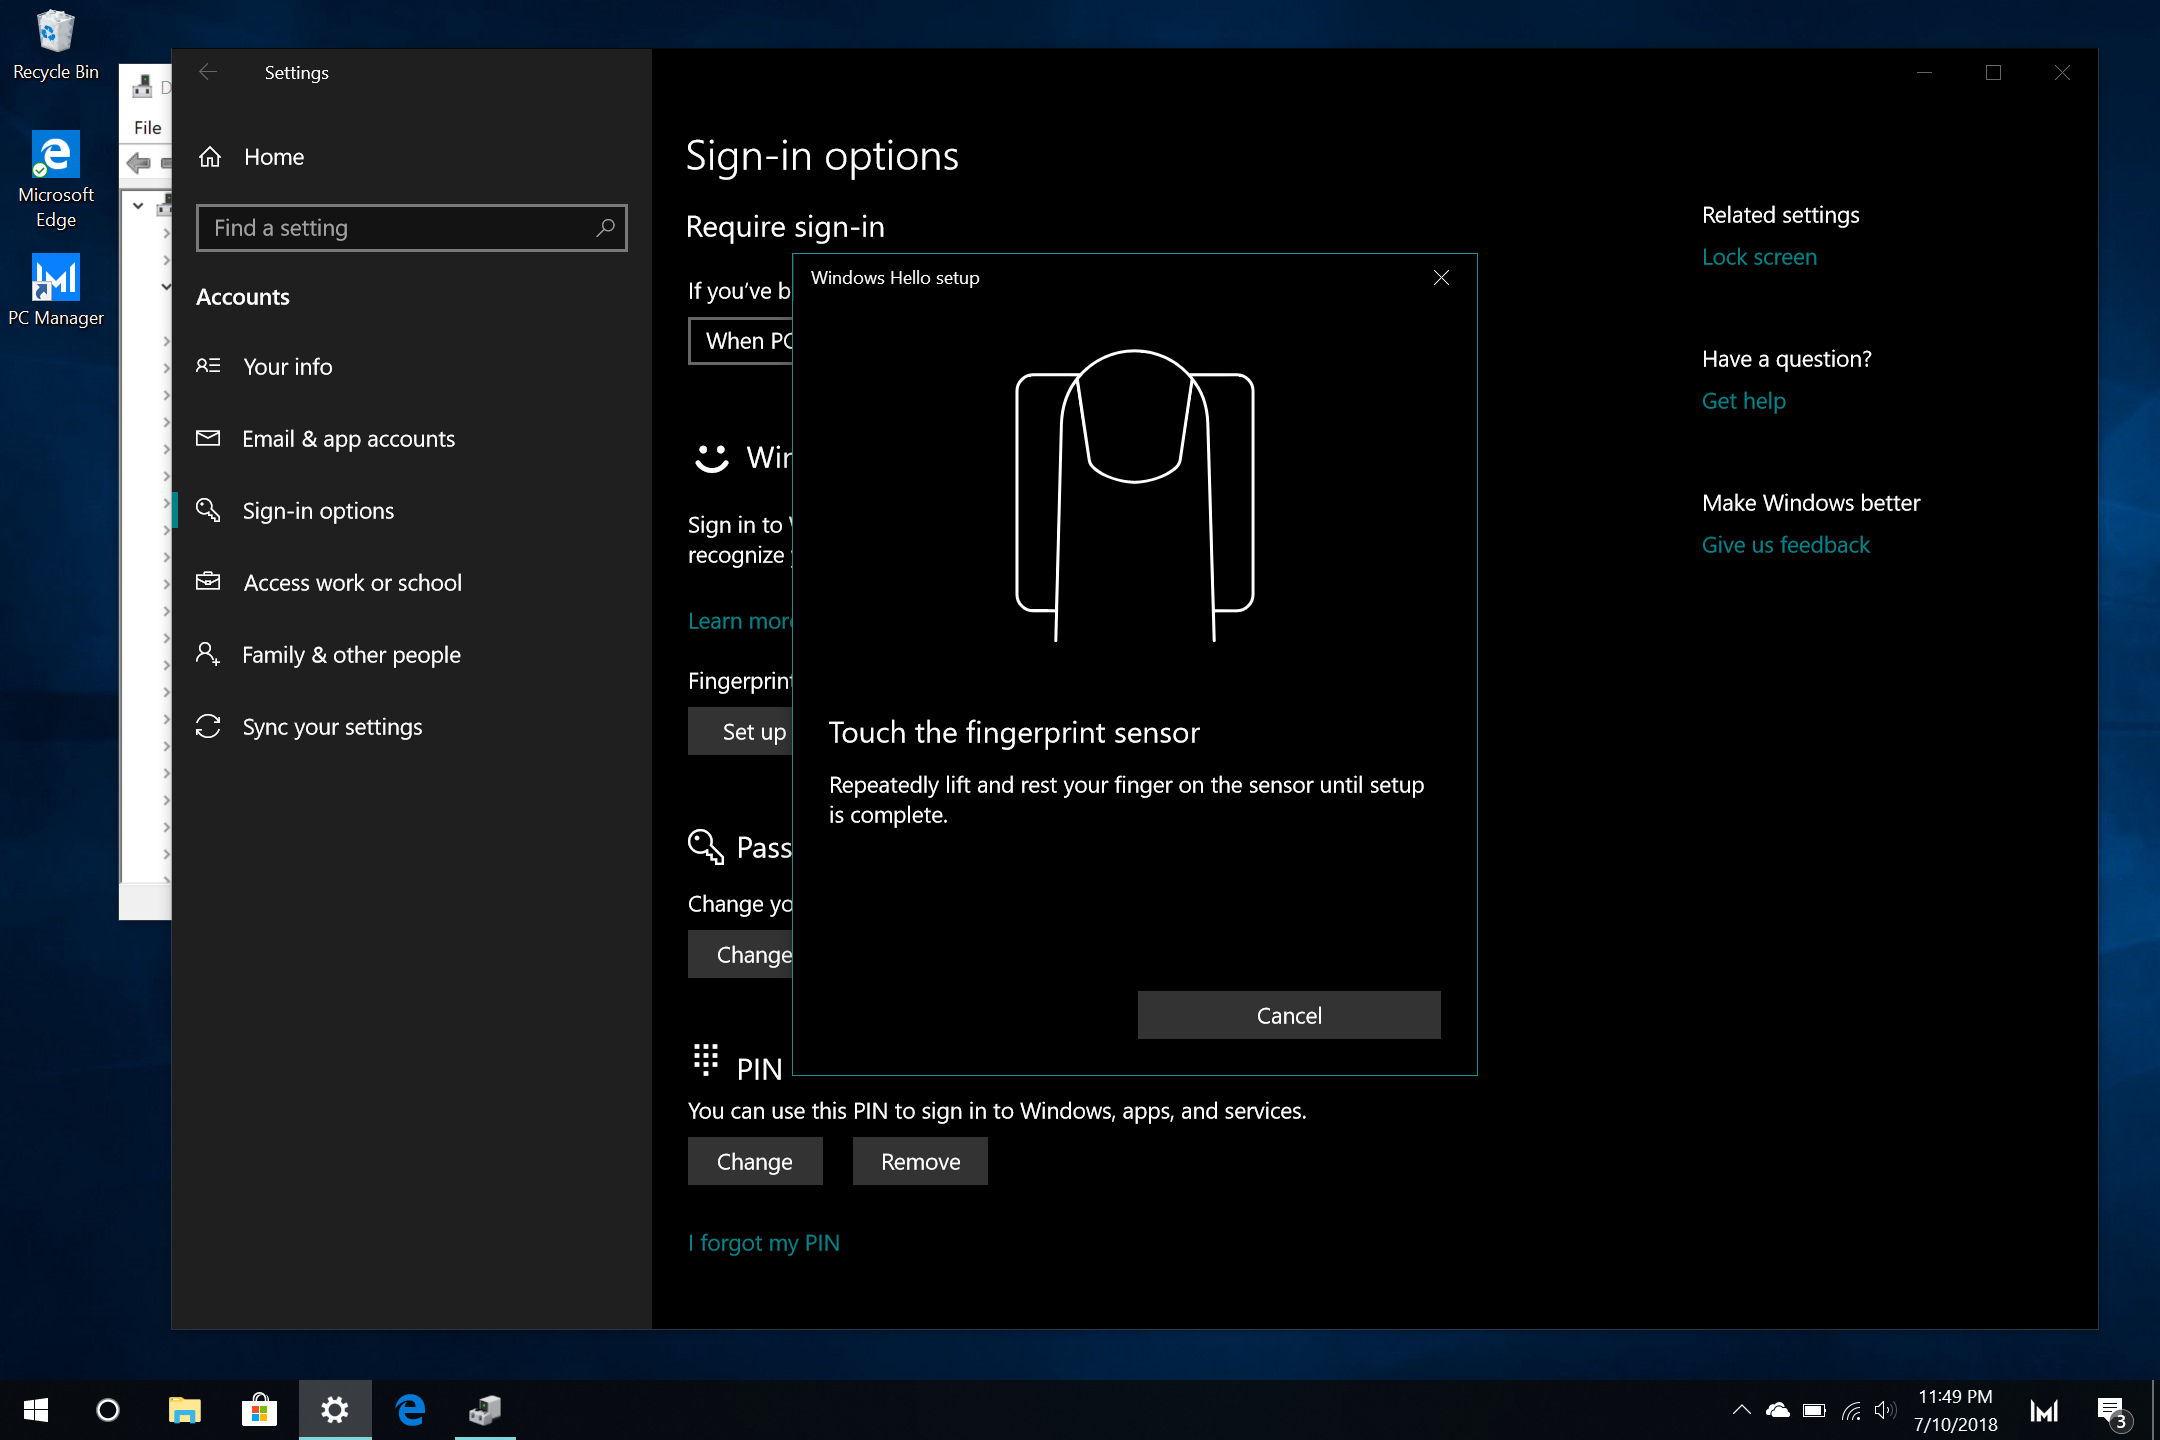 Cannot get Fingerprint scanner to work after clean W10